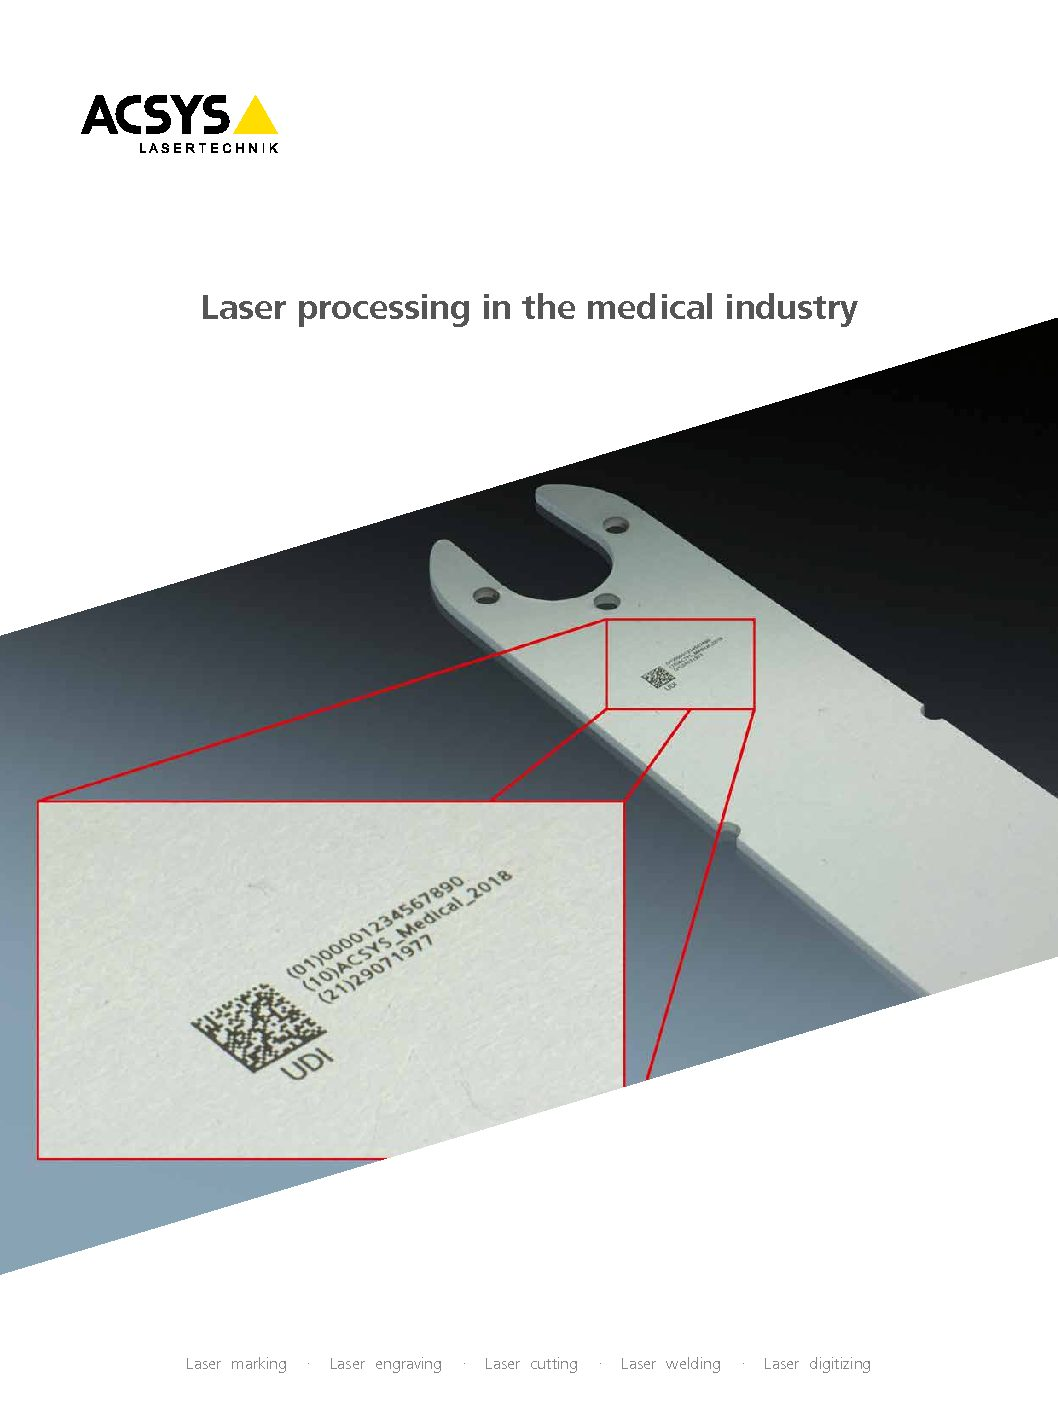 The Infobrochure about ACSYS MEDICAL laser processing systems